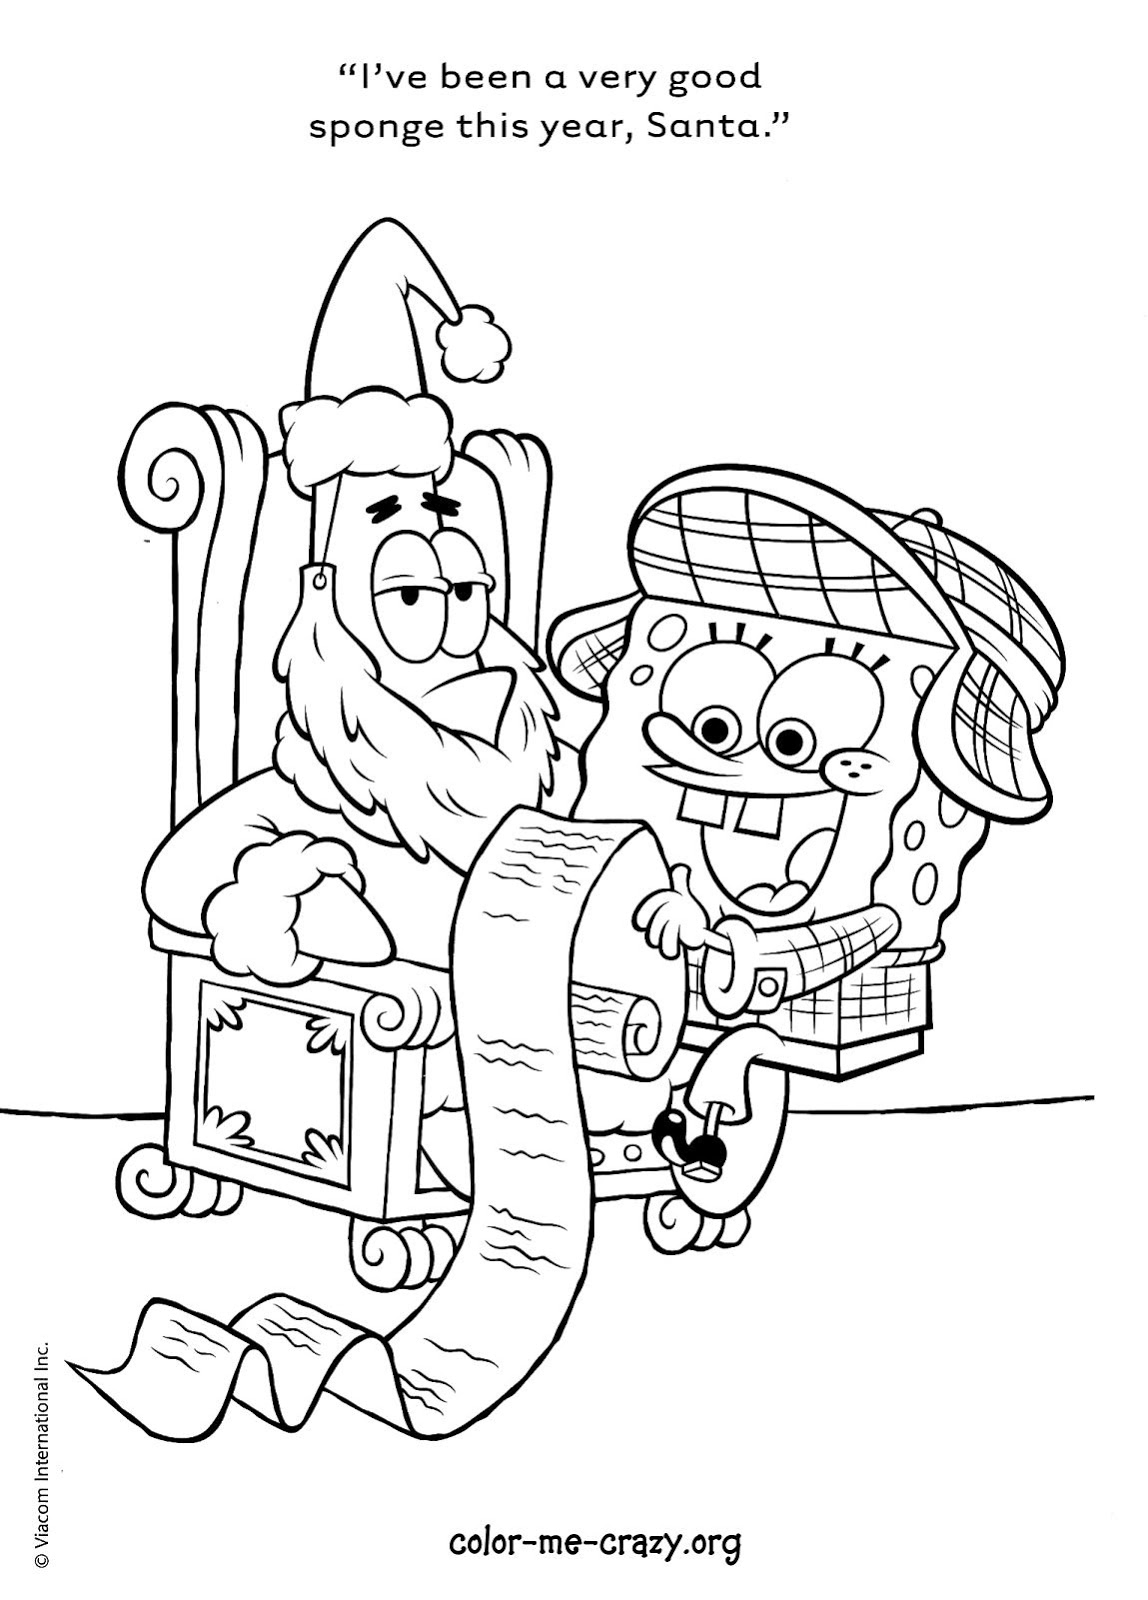 spongebob krabby patty coloring pages - photo#18